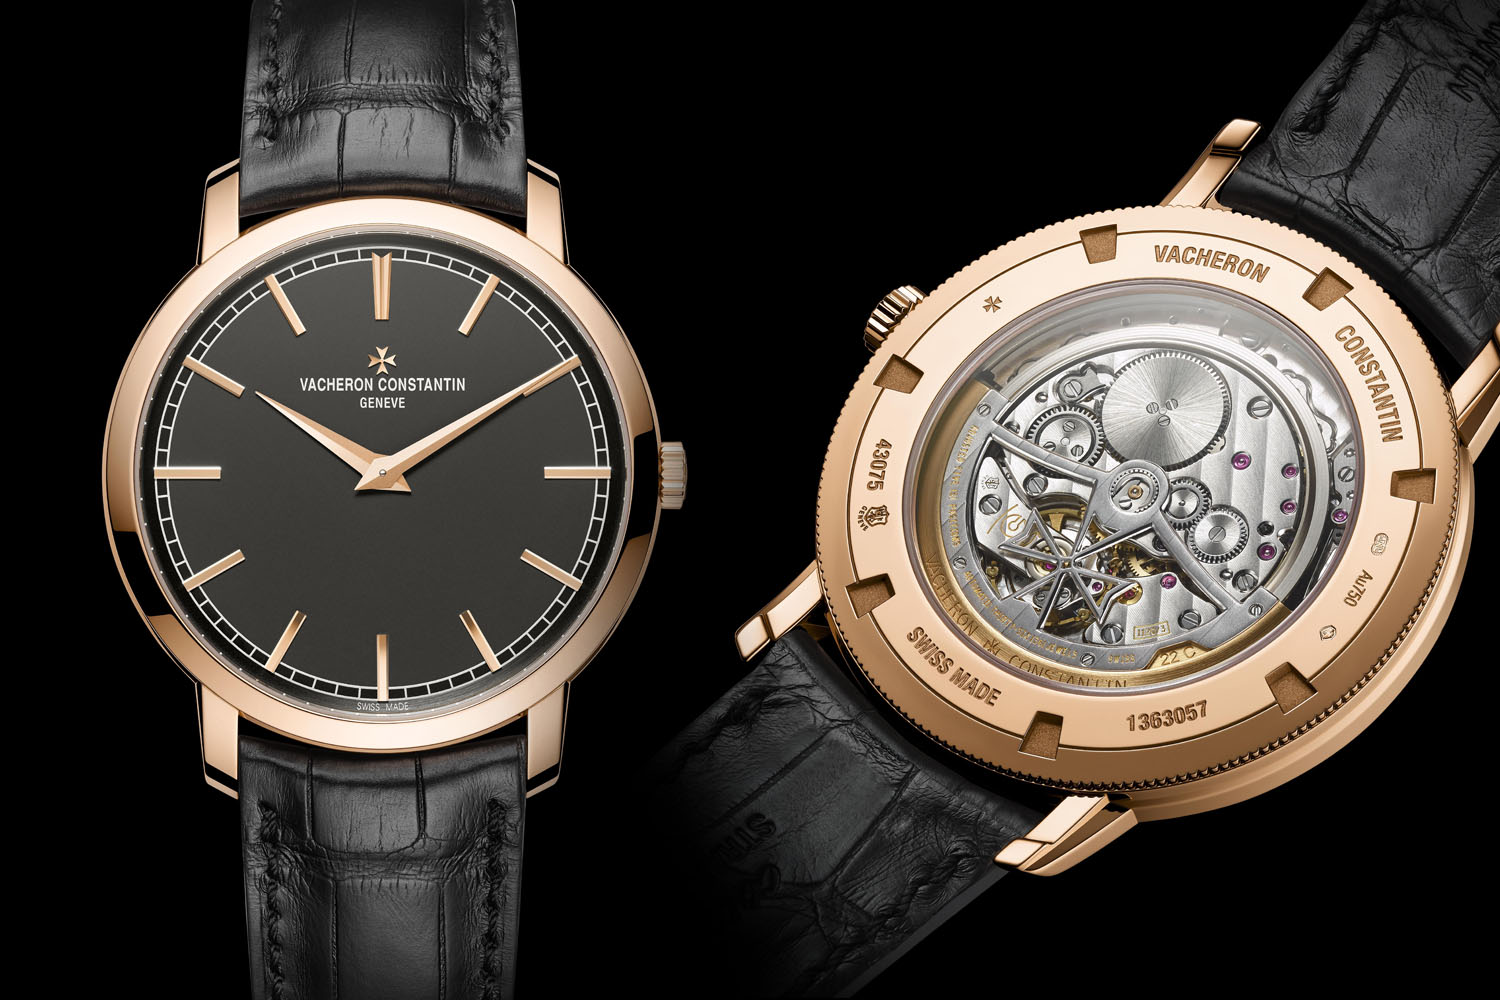 Vacheron Constantin Traditionnelle ultra-thin slate grey